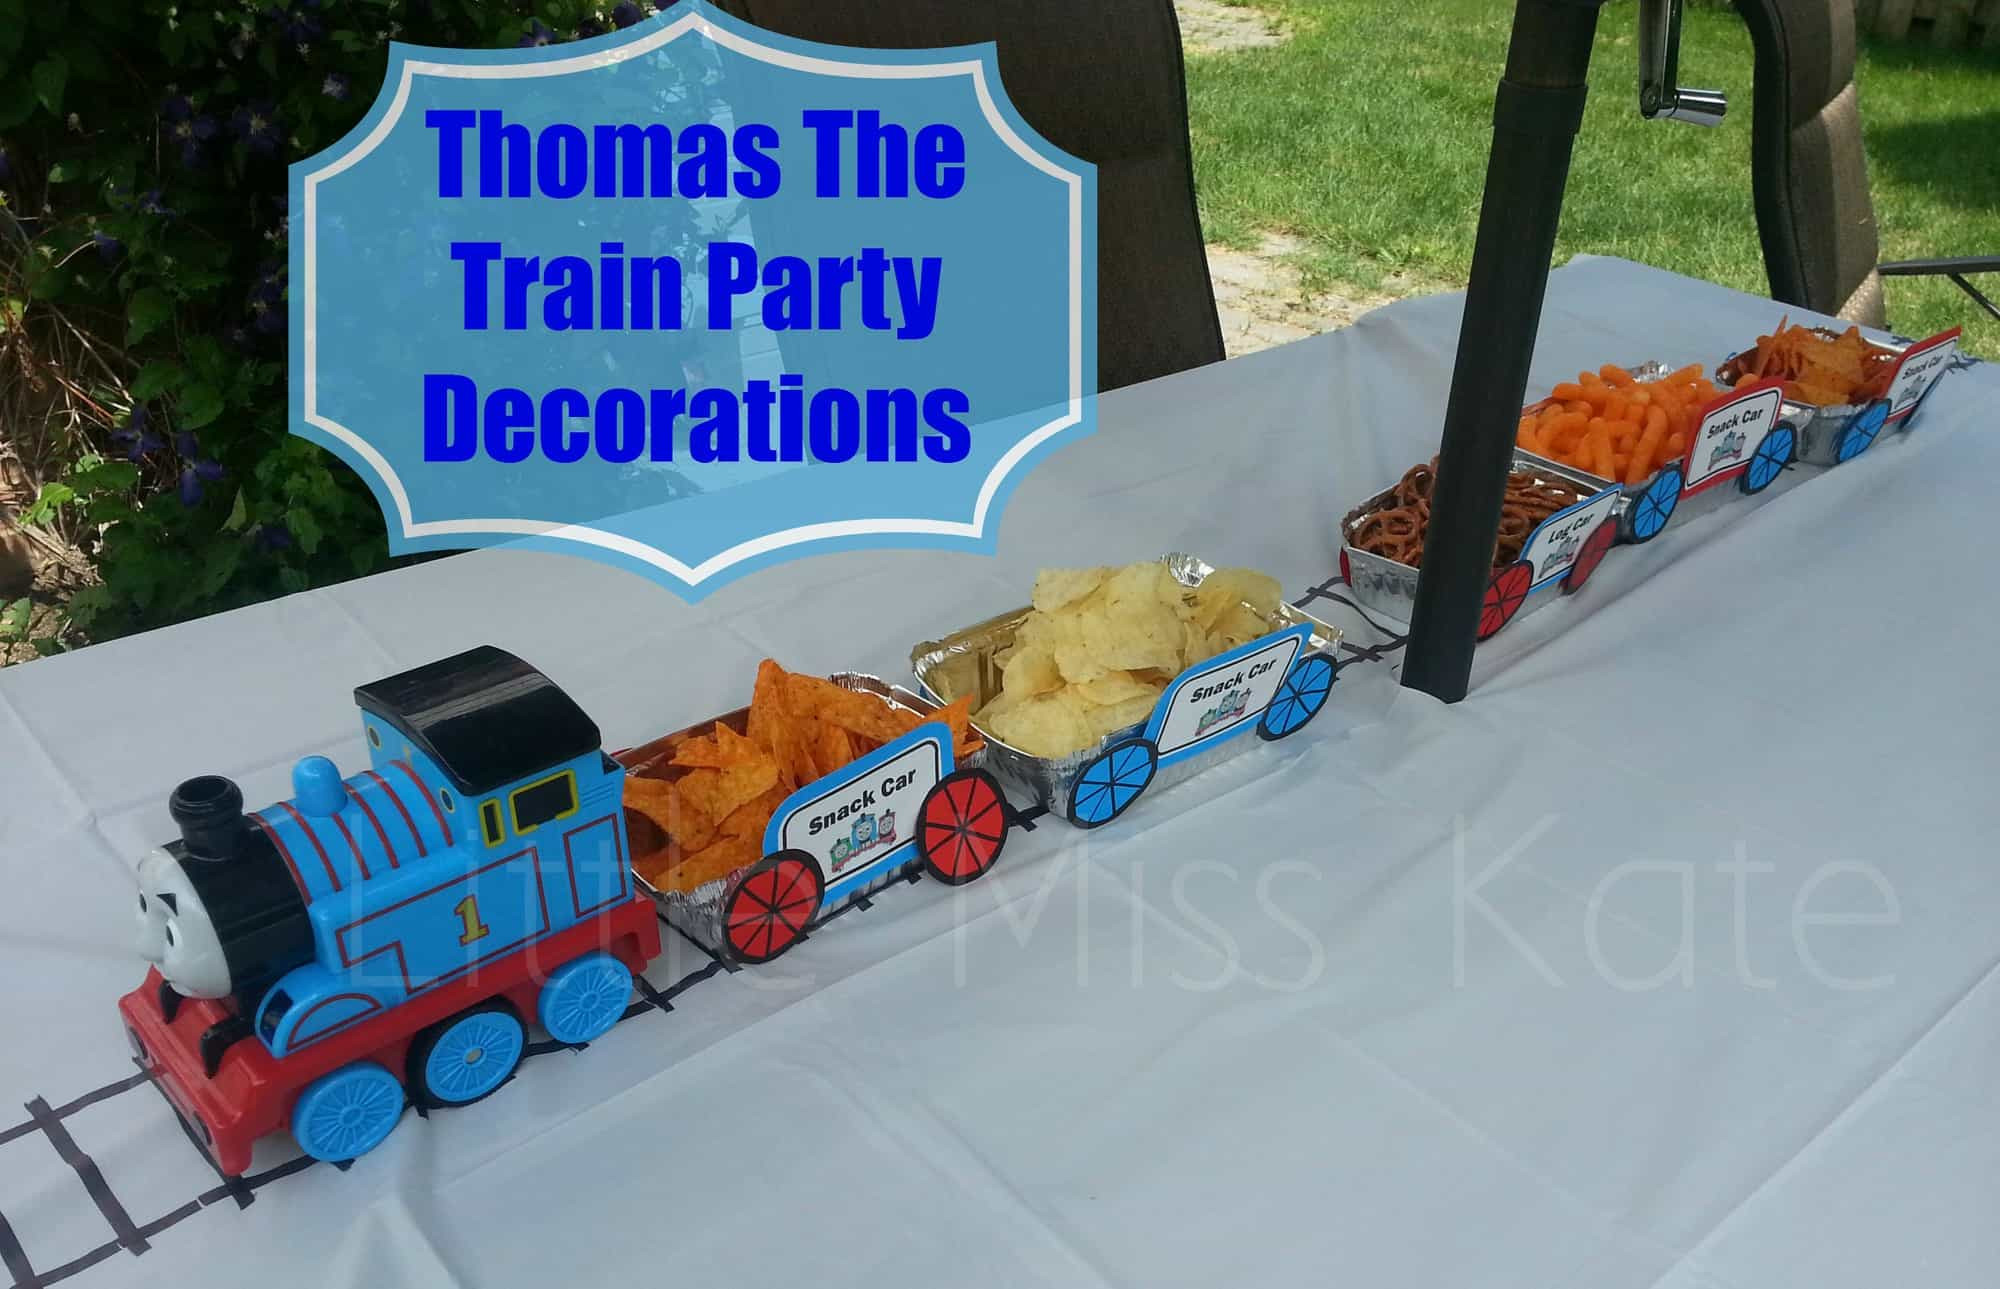 Thomas The Train Birthday Decorations  Thomas The Train Party Decorations Little Miss Kate